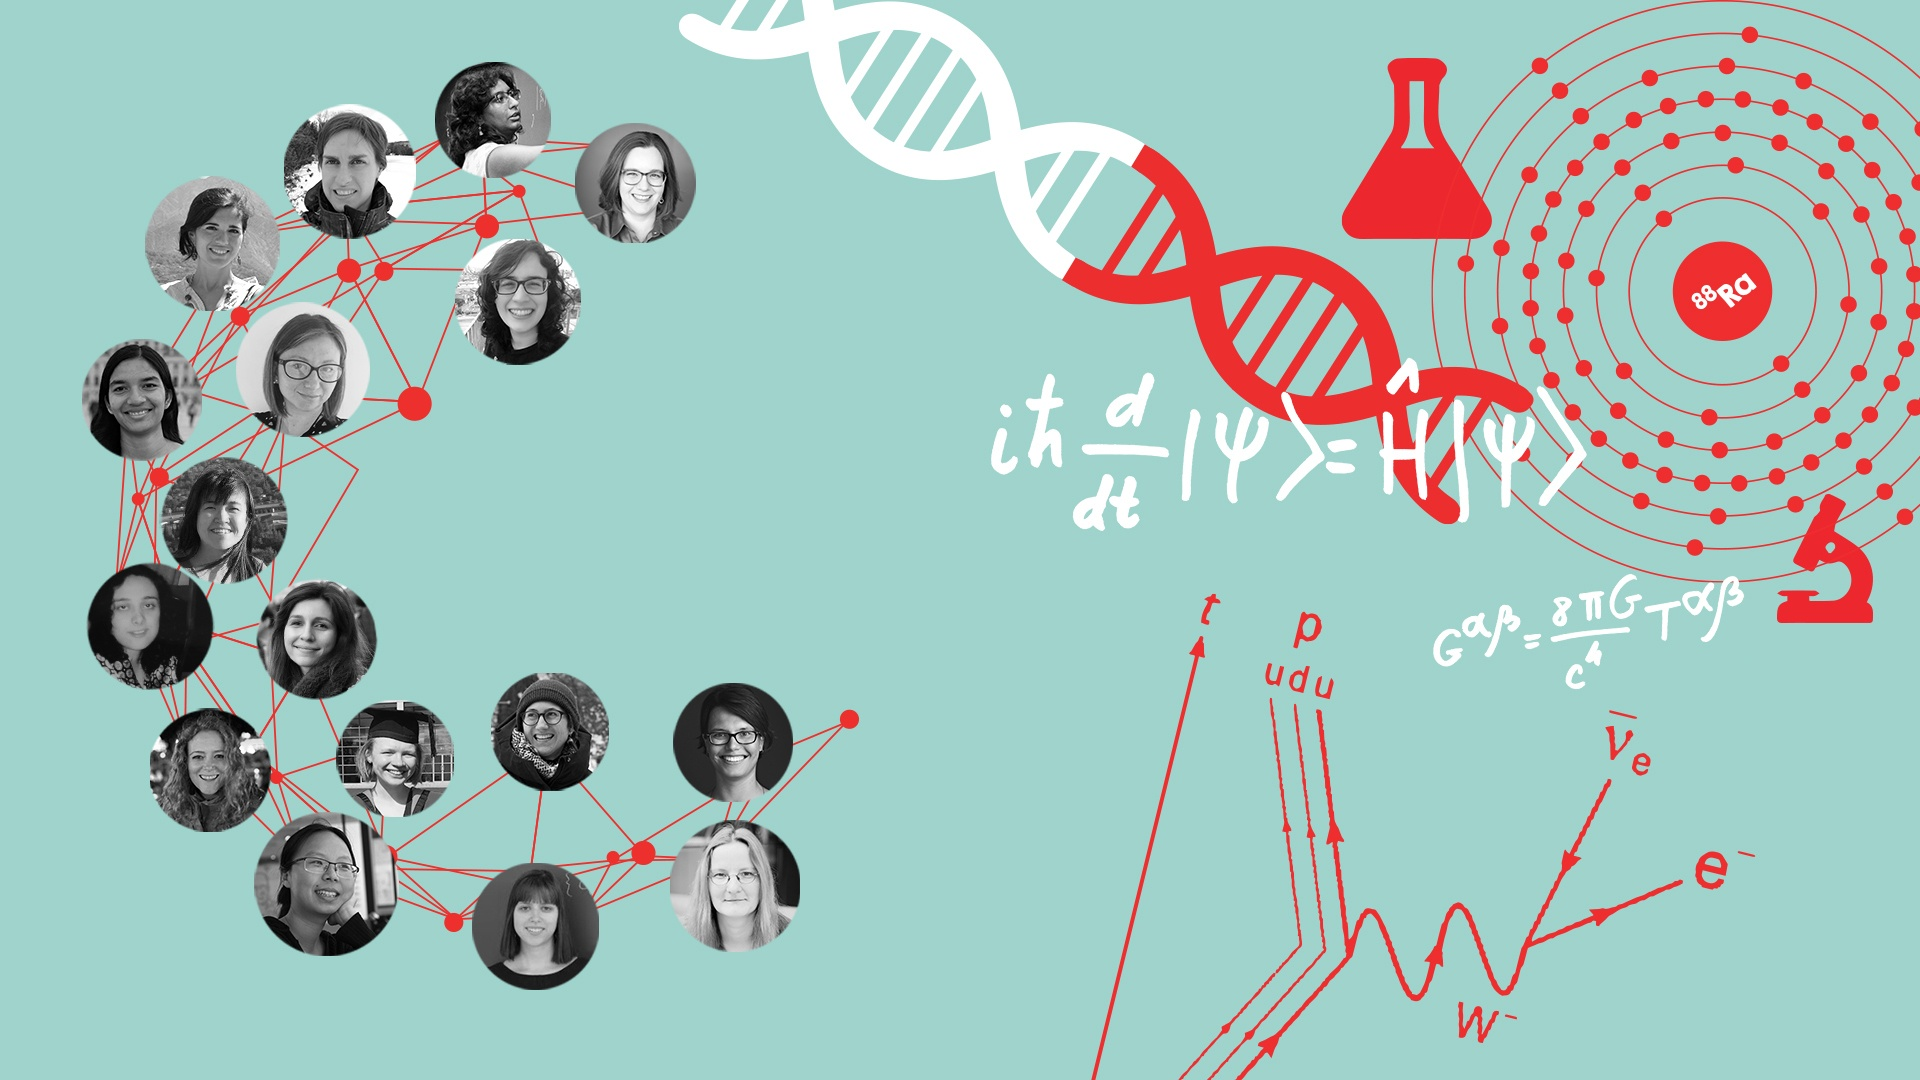 Illustration with women's faces and some science graphics